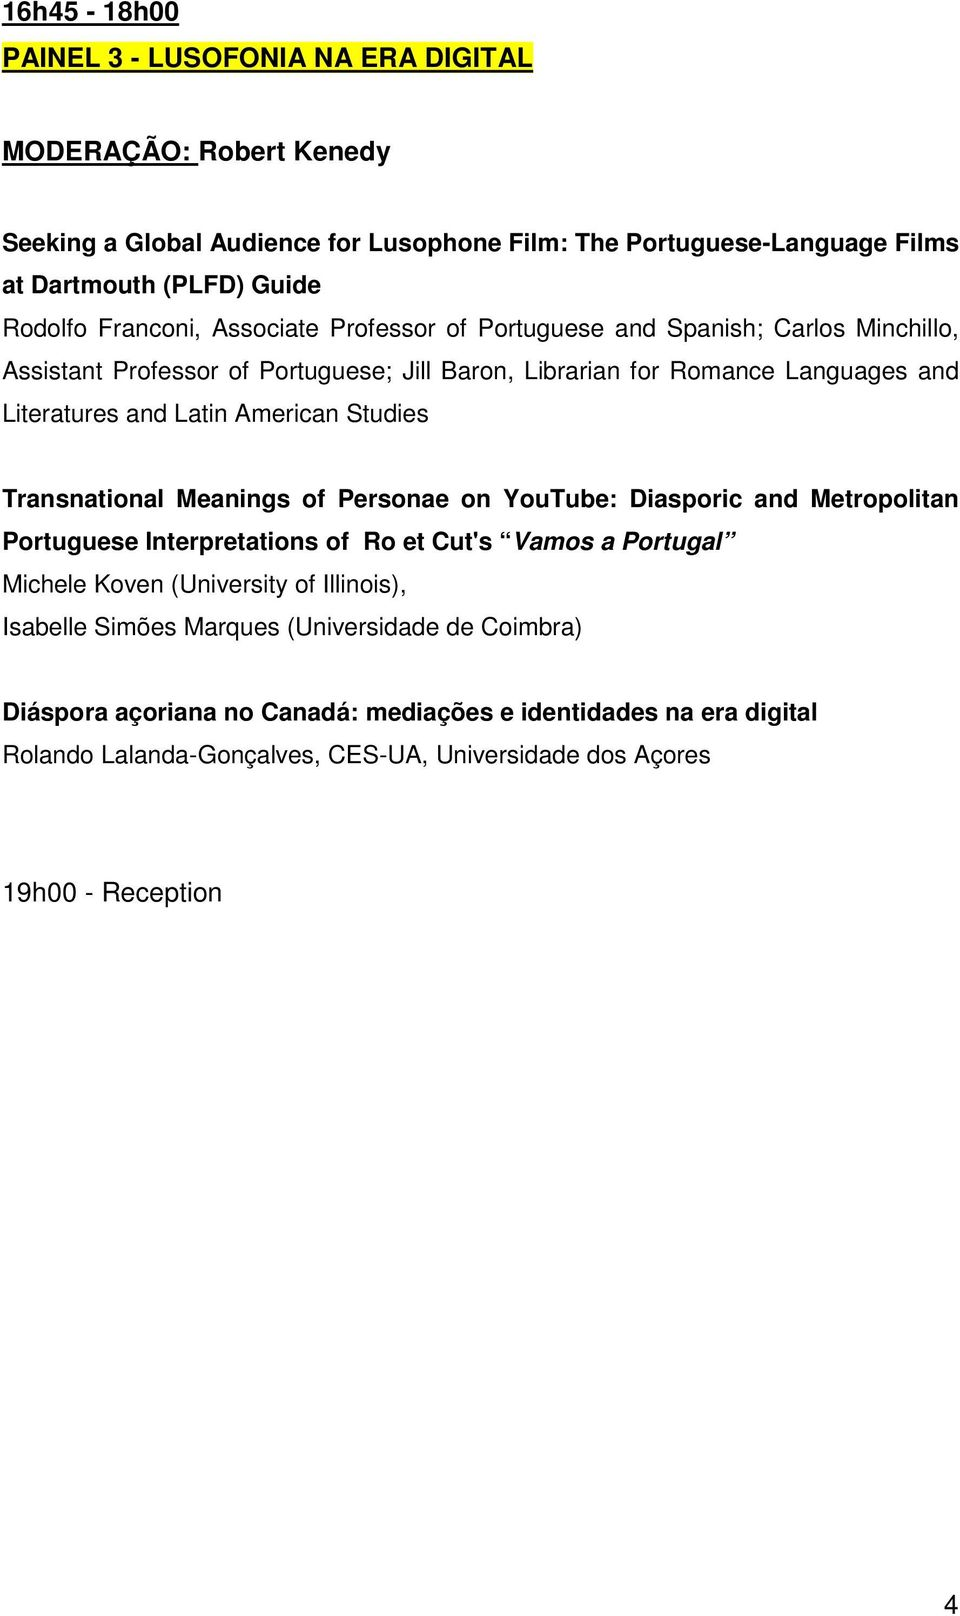 American Studies Transnational Meanings of Personae on YouTube: Diasporic and Metropolitan Portuguese Interpretations of Ro et Cut's Vamos a Portugal Michele Koven (University of